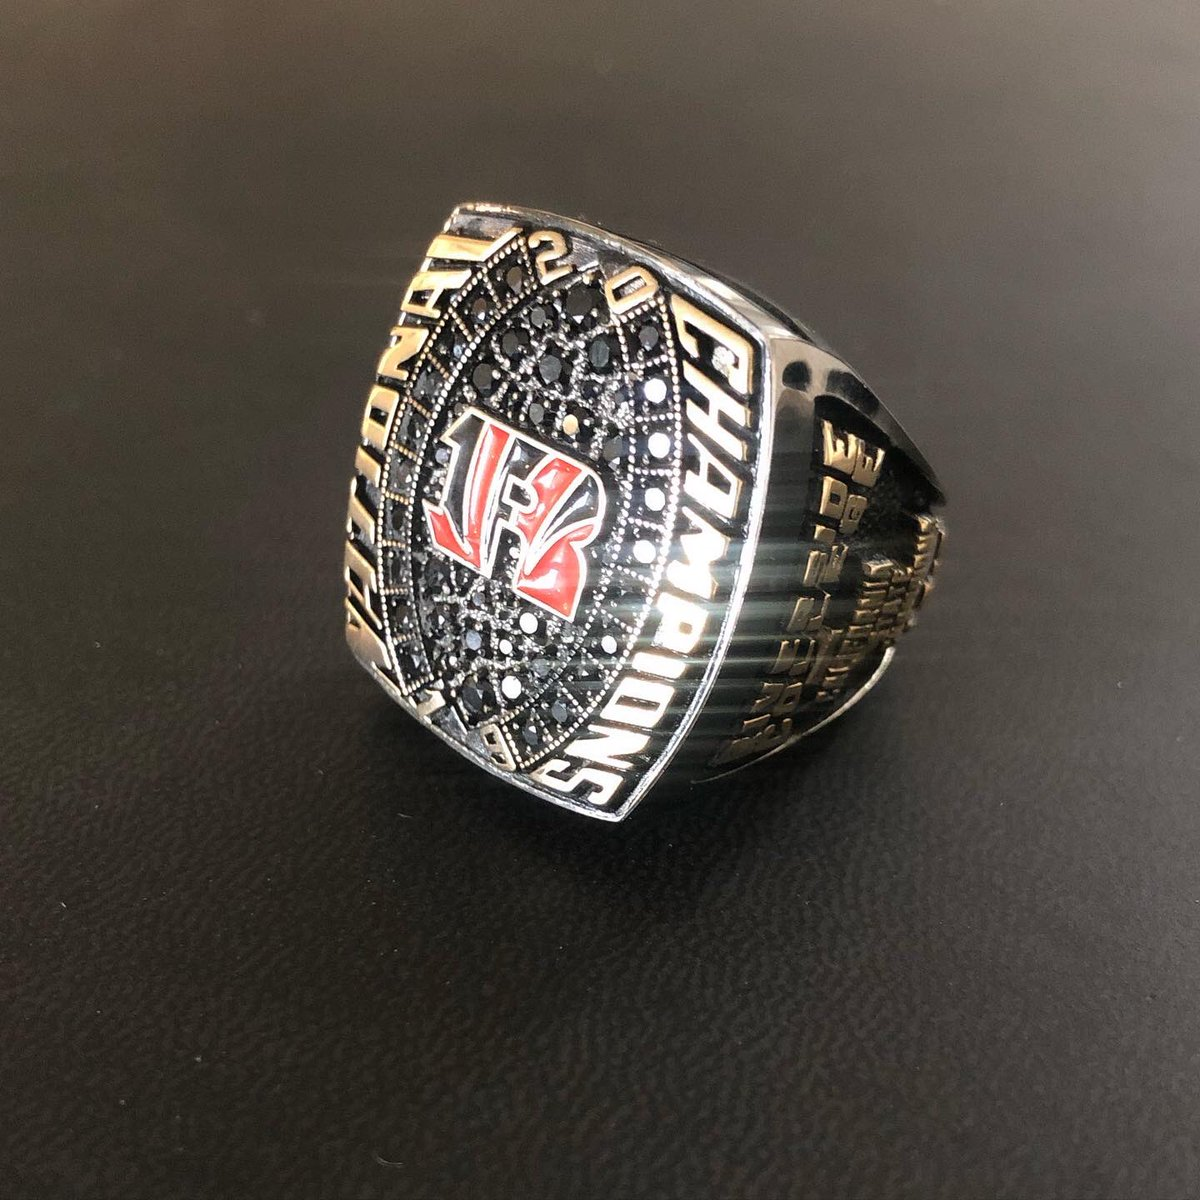 Did we mention that @RCCTigerFB won the 2019 National Title? RINGS ARE IN 💎 • #TheCommunitysCollege https://t.co/6JFl5D8WRx